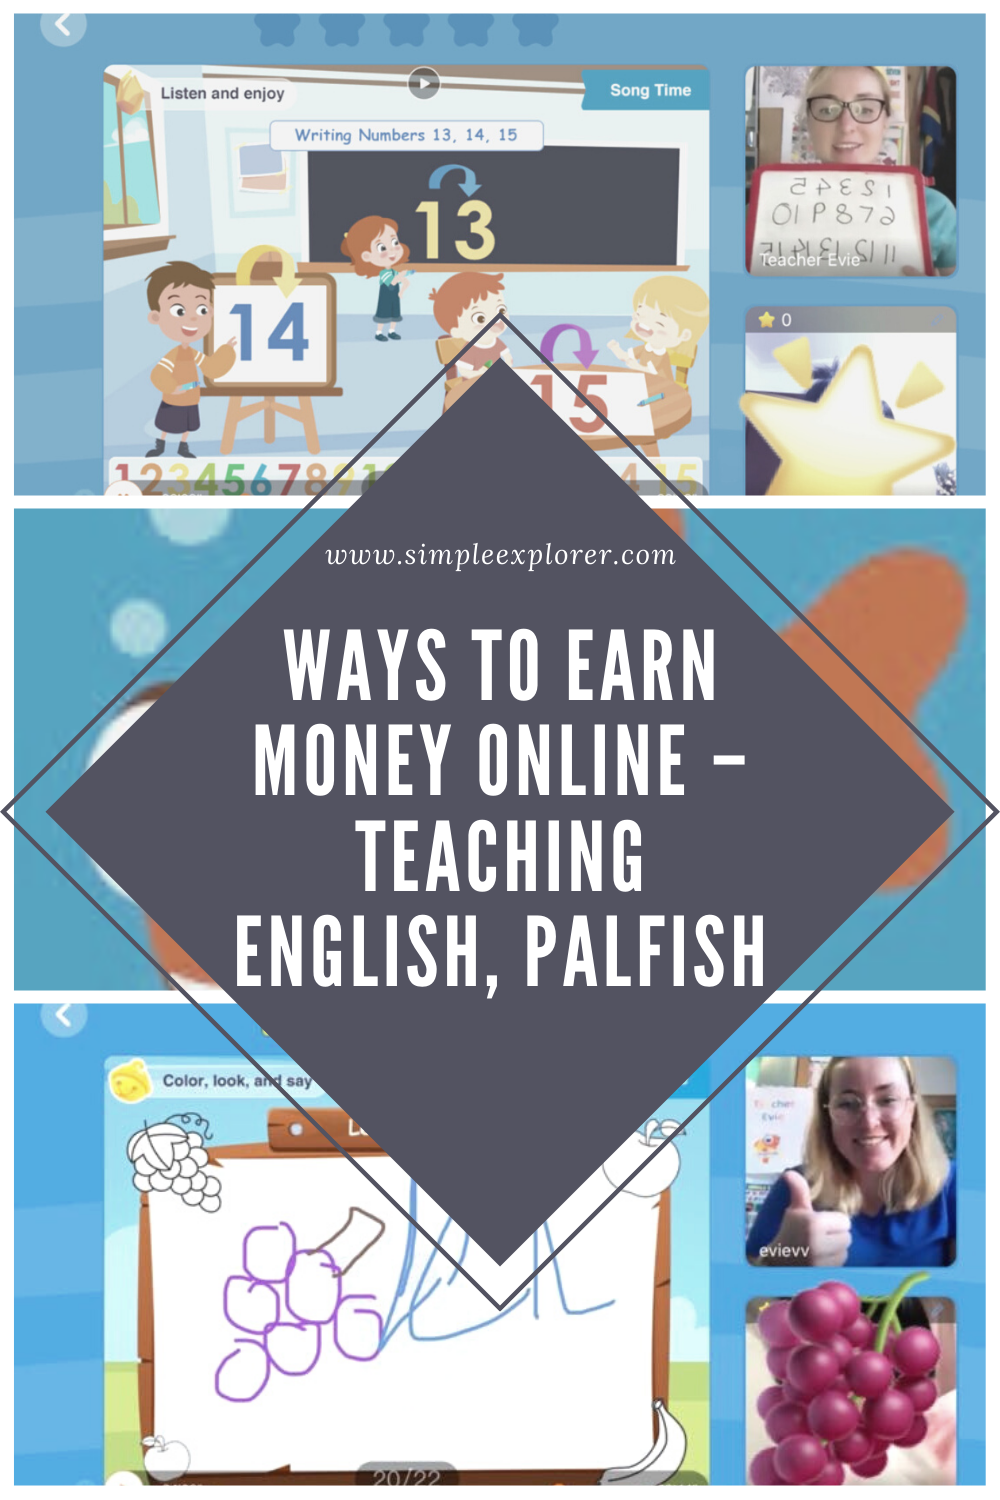 WAYS TO EARN MONEY ONLINE – TEACHING ENGLISH, PALFISH